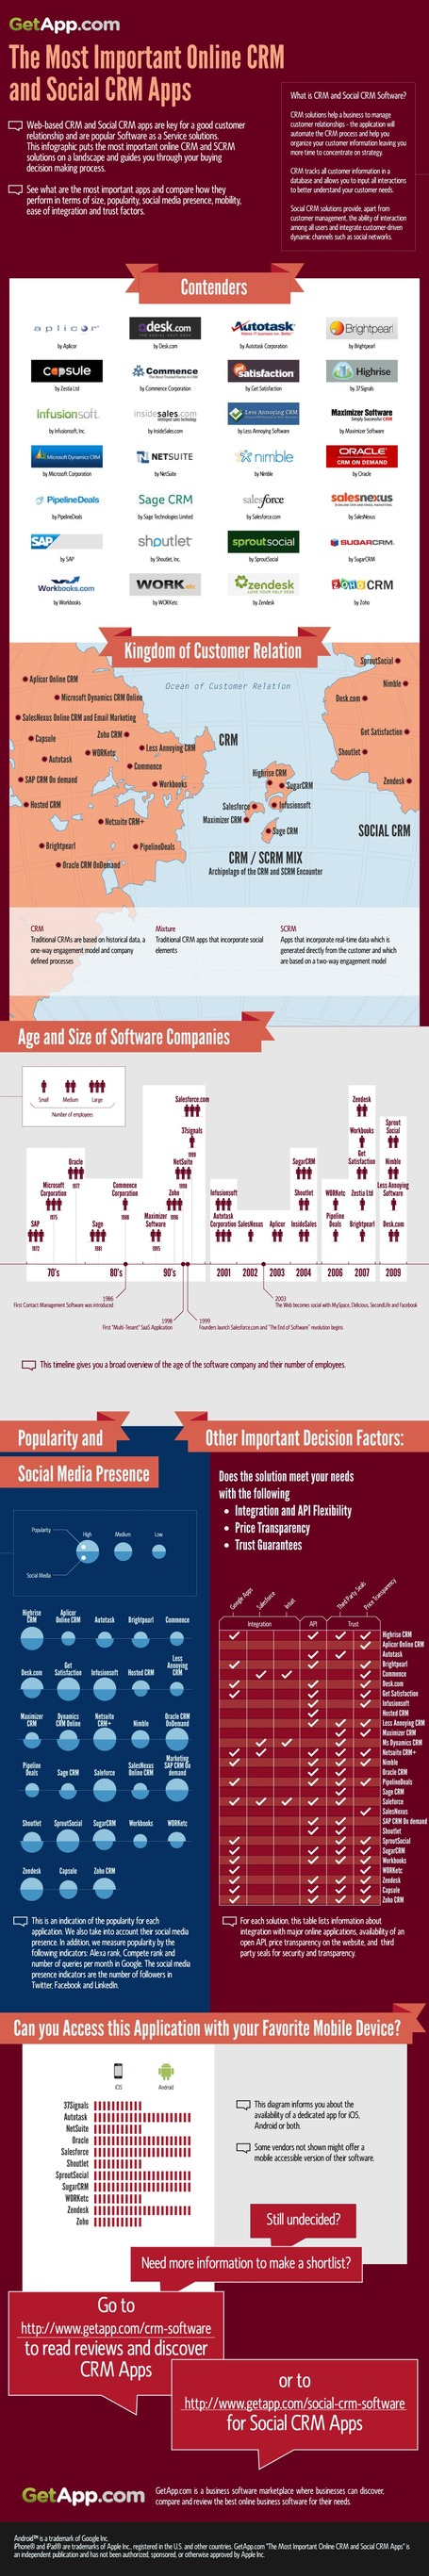 Does Social Customer Relationship Management (CRM) Exist? Maybe [Infographic] | Curation Revolution | Scoop.it